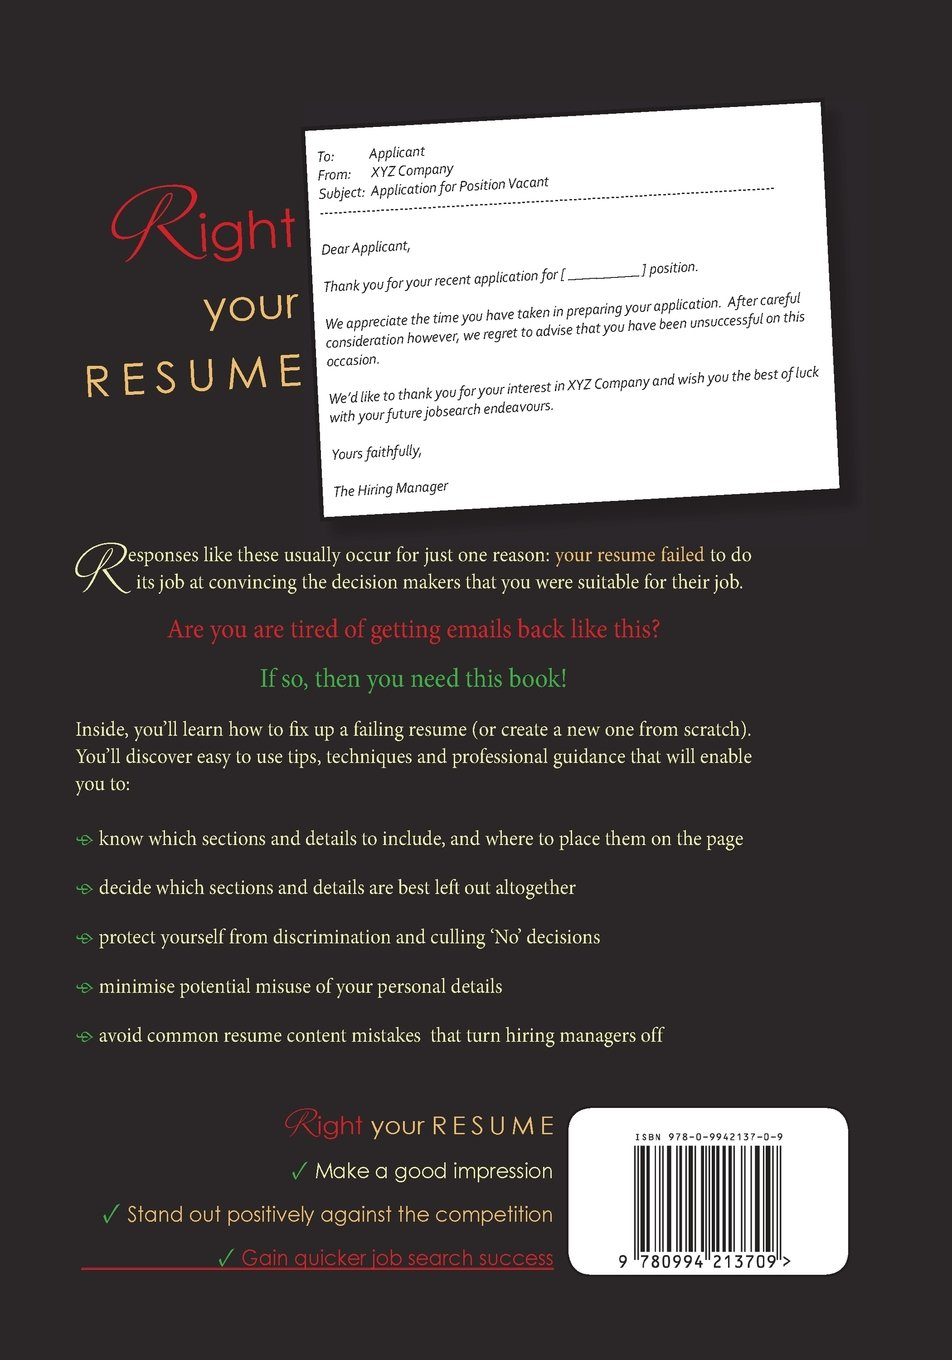 Right Your Resume Fix Or Create Your Resume Content So You